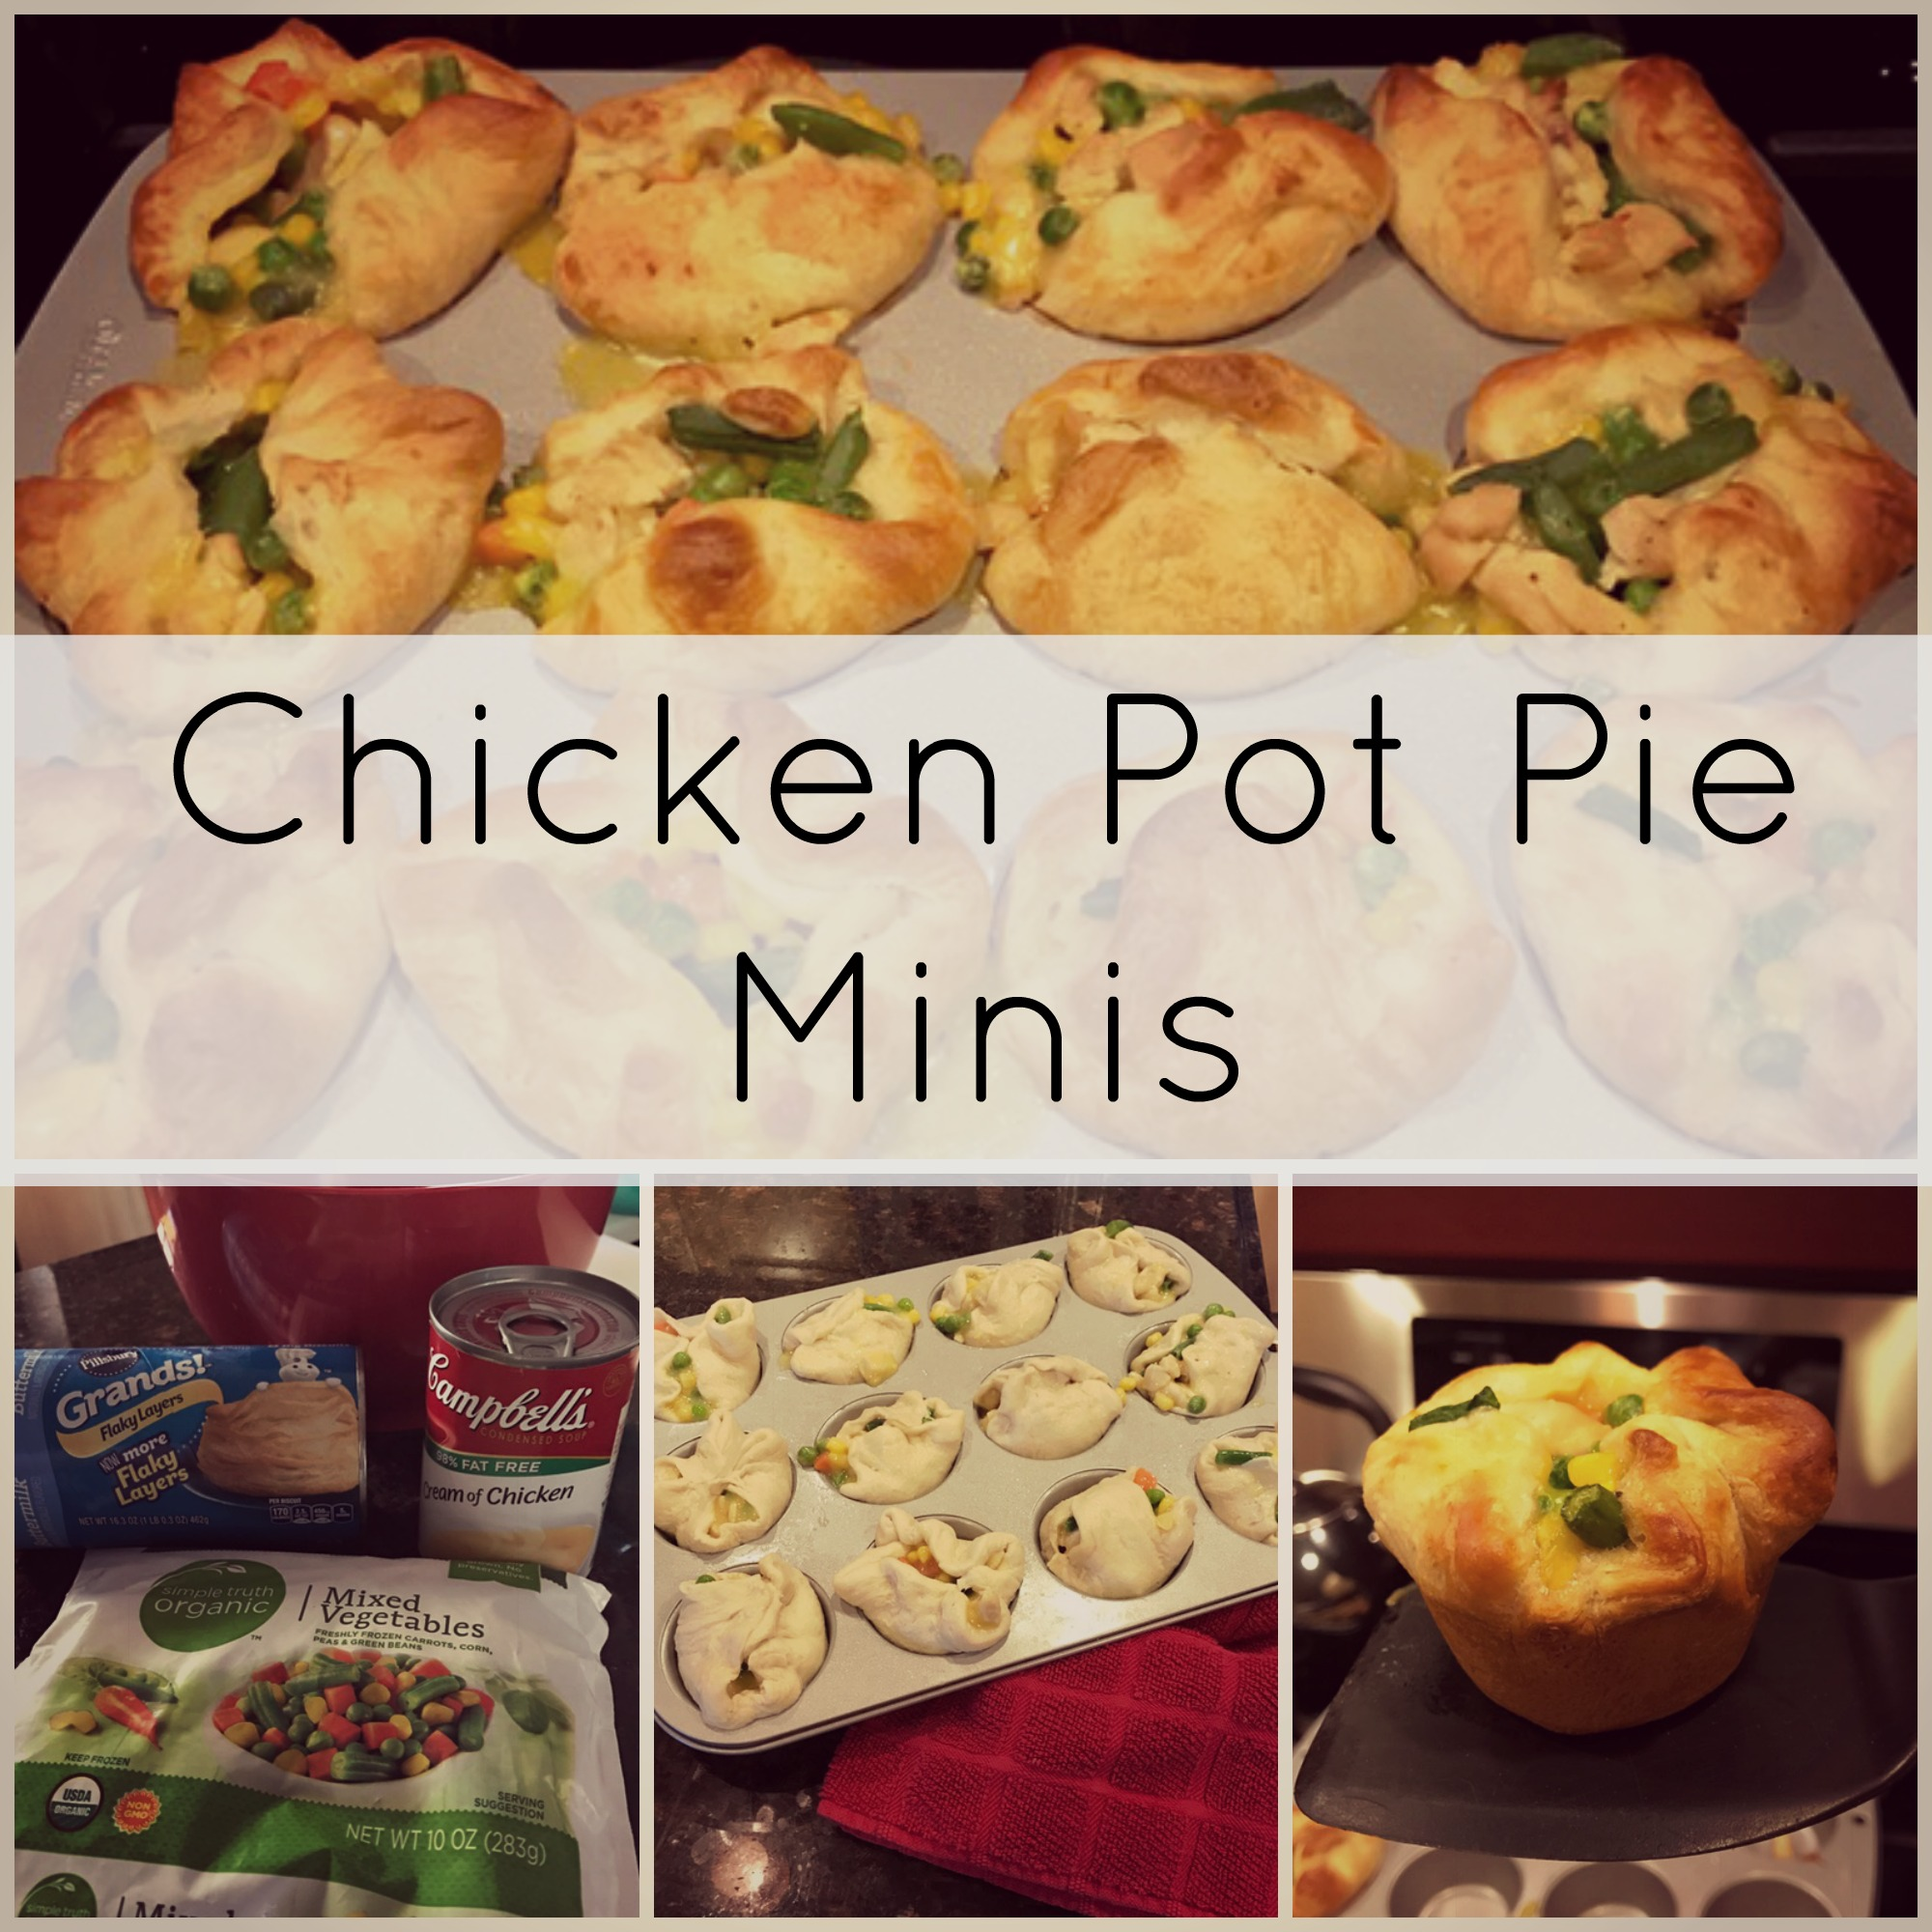 Pinterest for Dinner | Chicken Pot Pie Minis | twoplusmeandyou.com